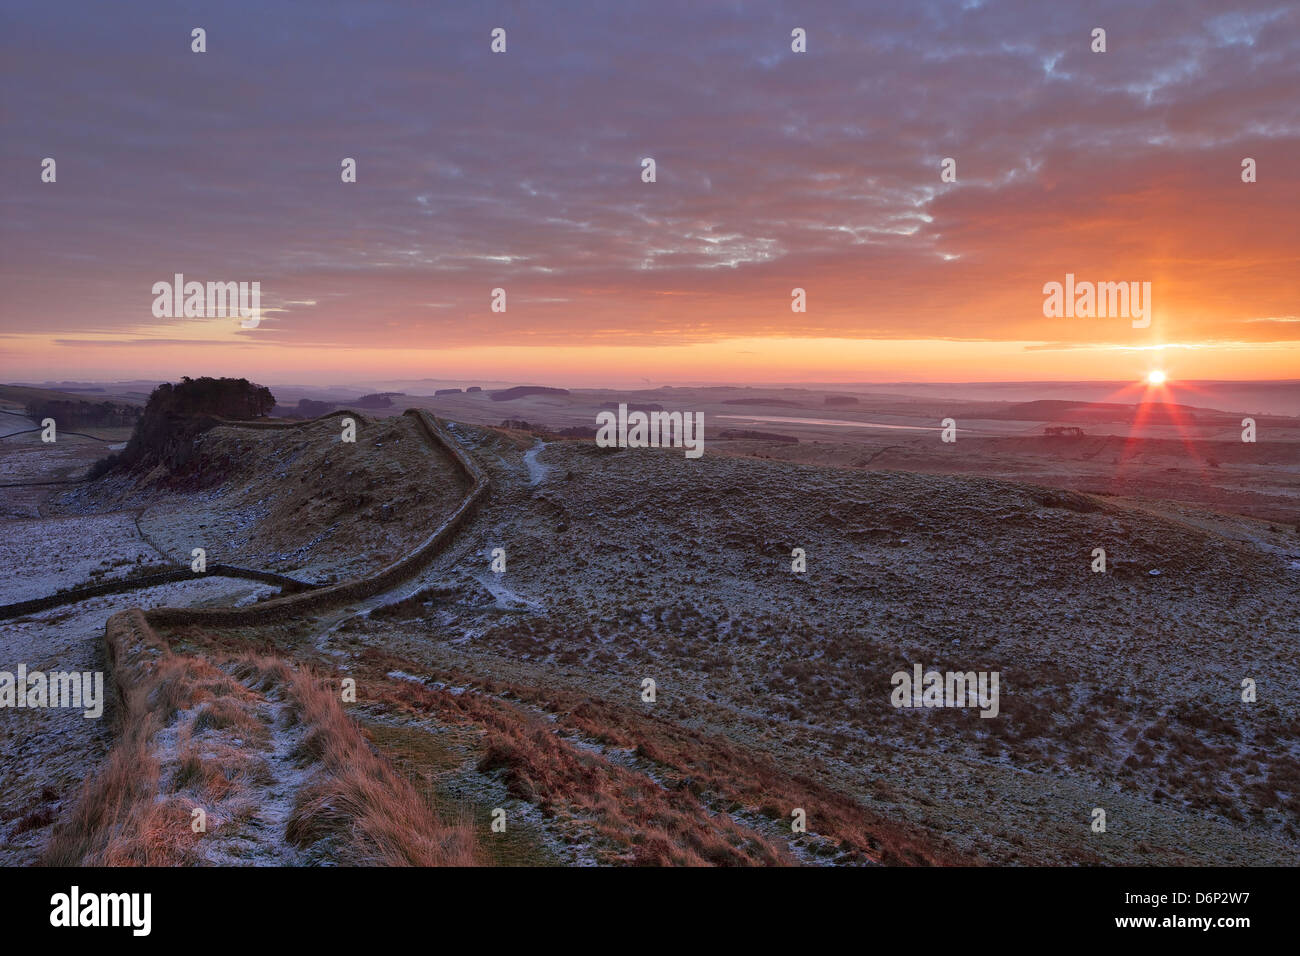 Sunrise and Hadrian's Wall National Trail, Hadrian's Wall, UNESCO World Heritage Site, Northumberland, England, Stock Photo